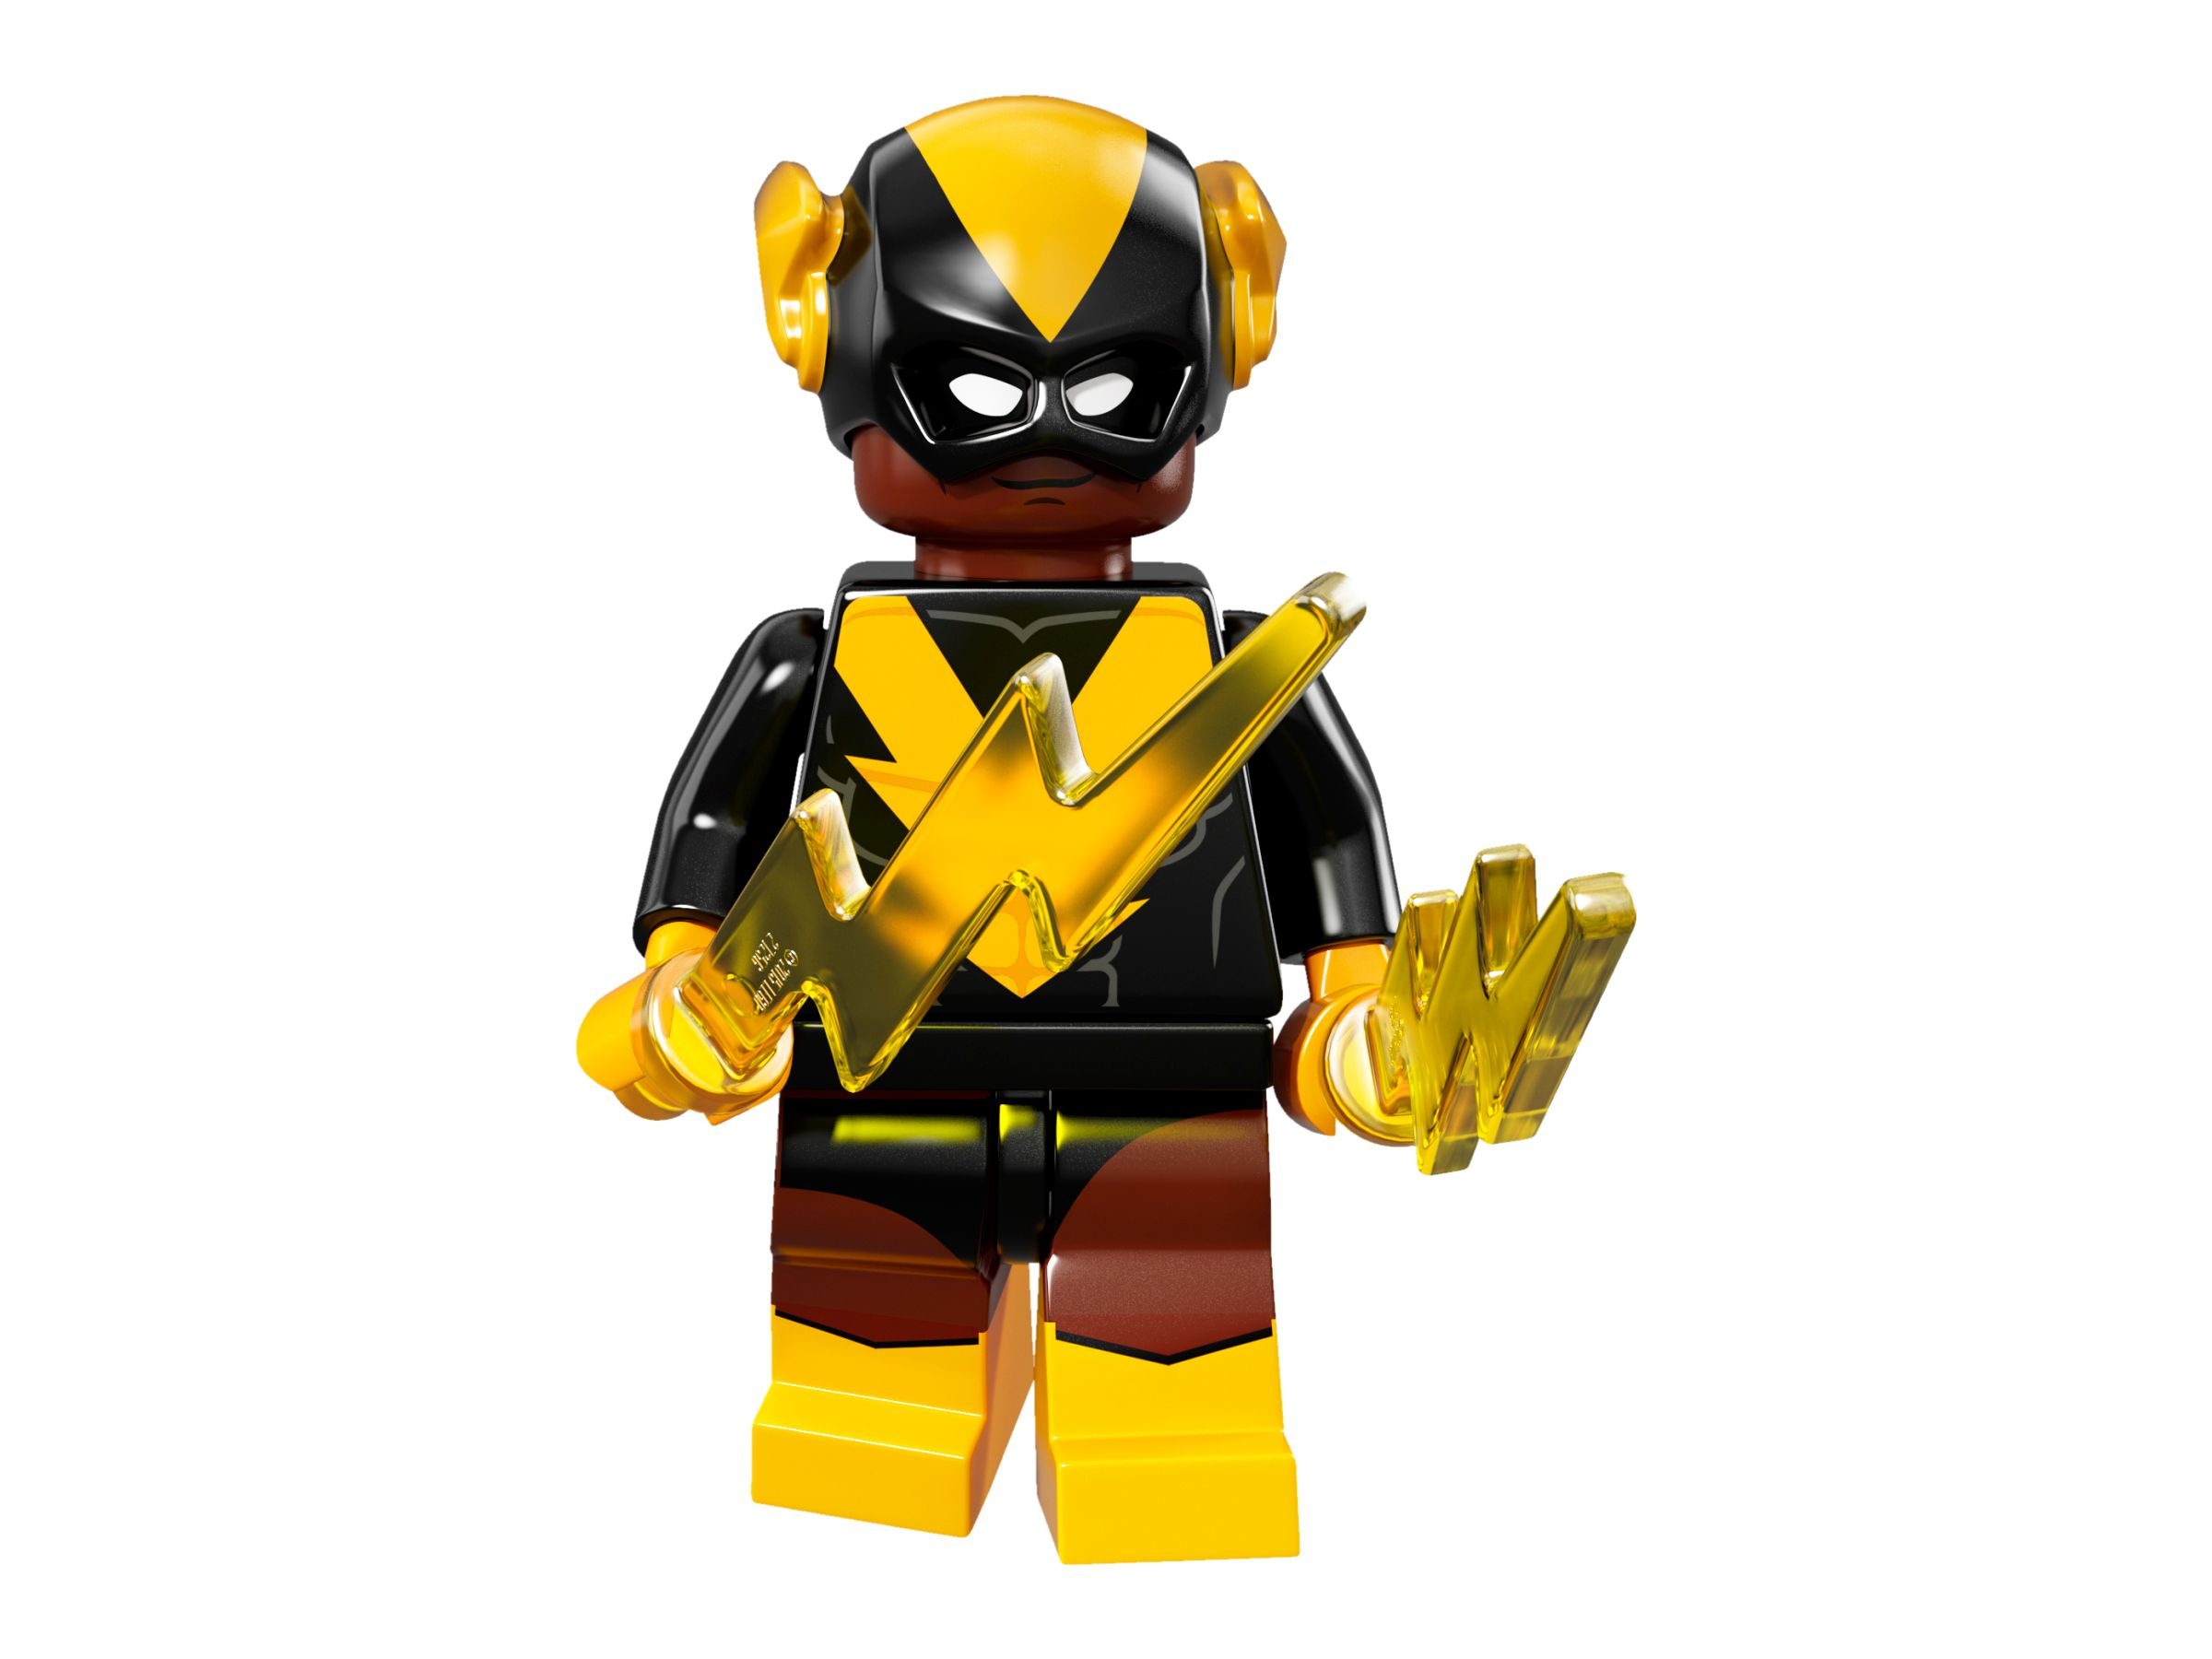 LEGO Collectable Minifigures 71020 LEGO® Batman Movie Minifiguren Serie 2 LEGO_71020_alt4.jpg